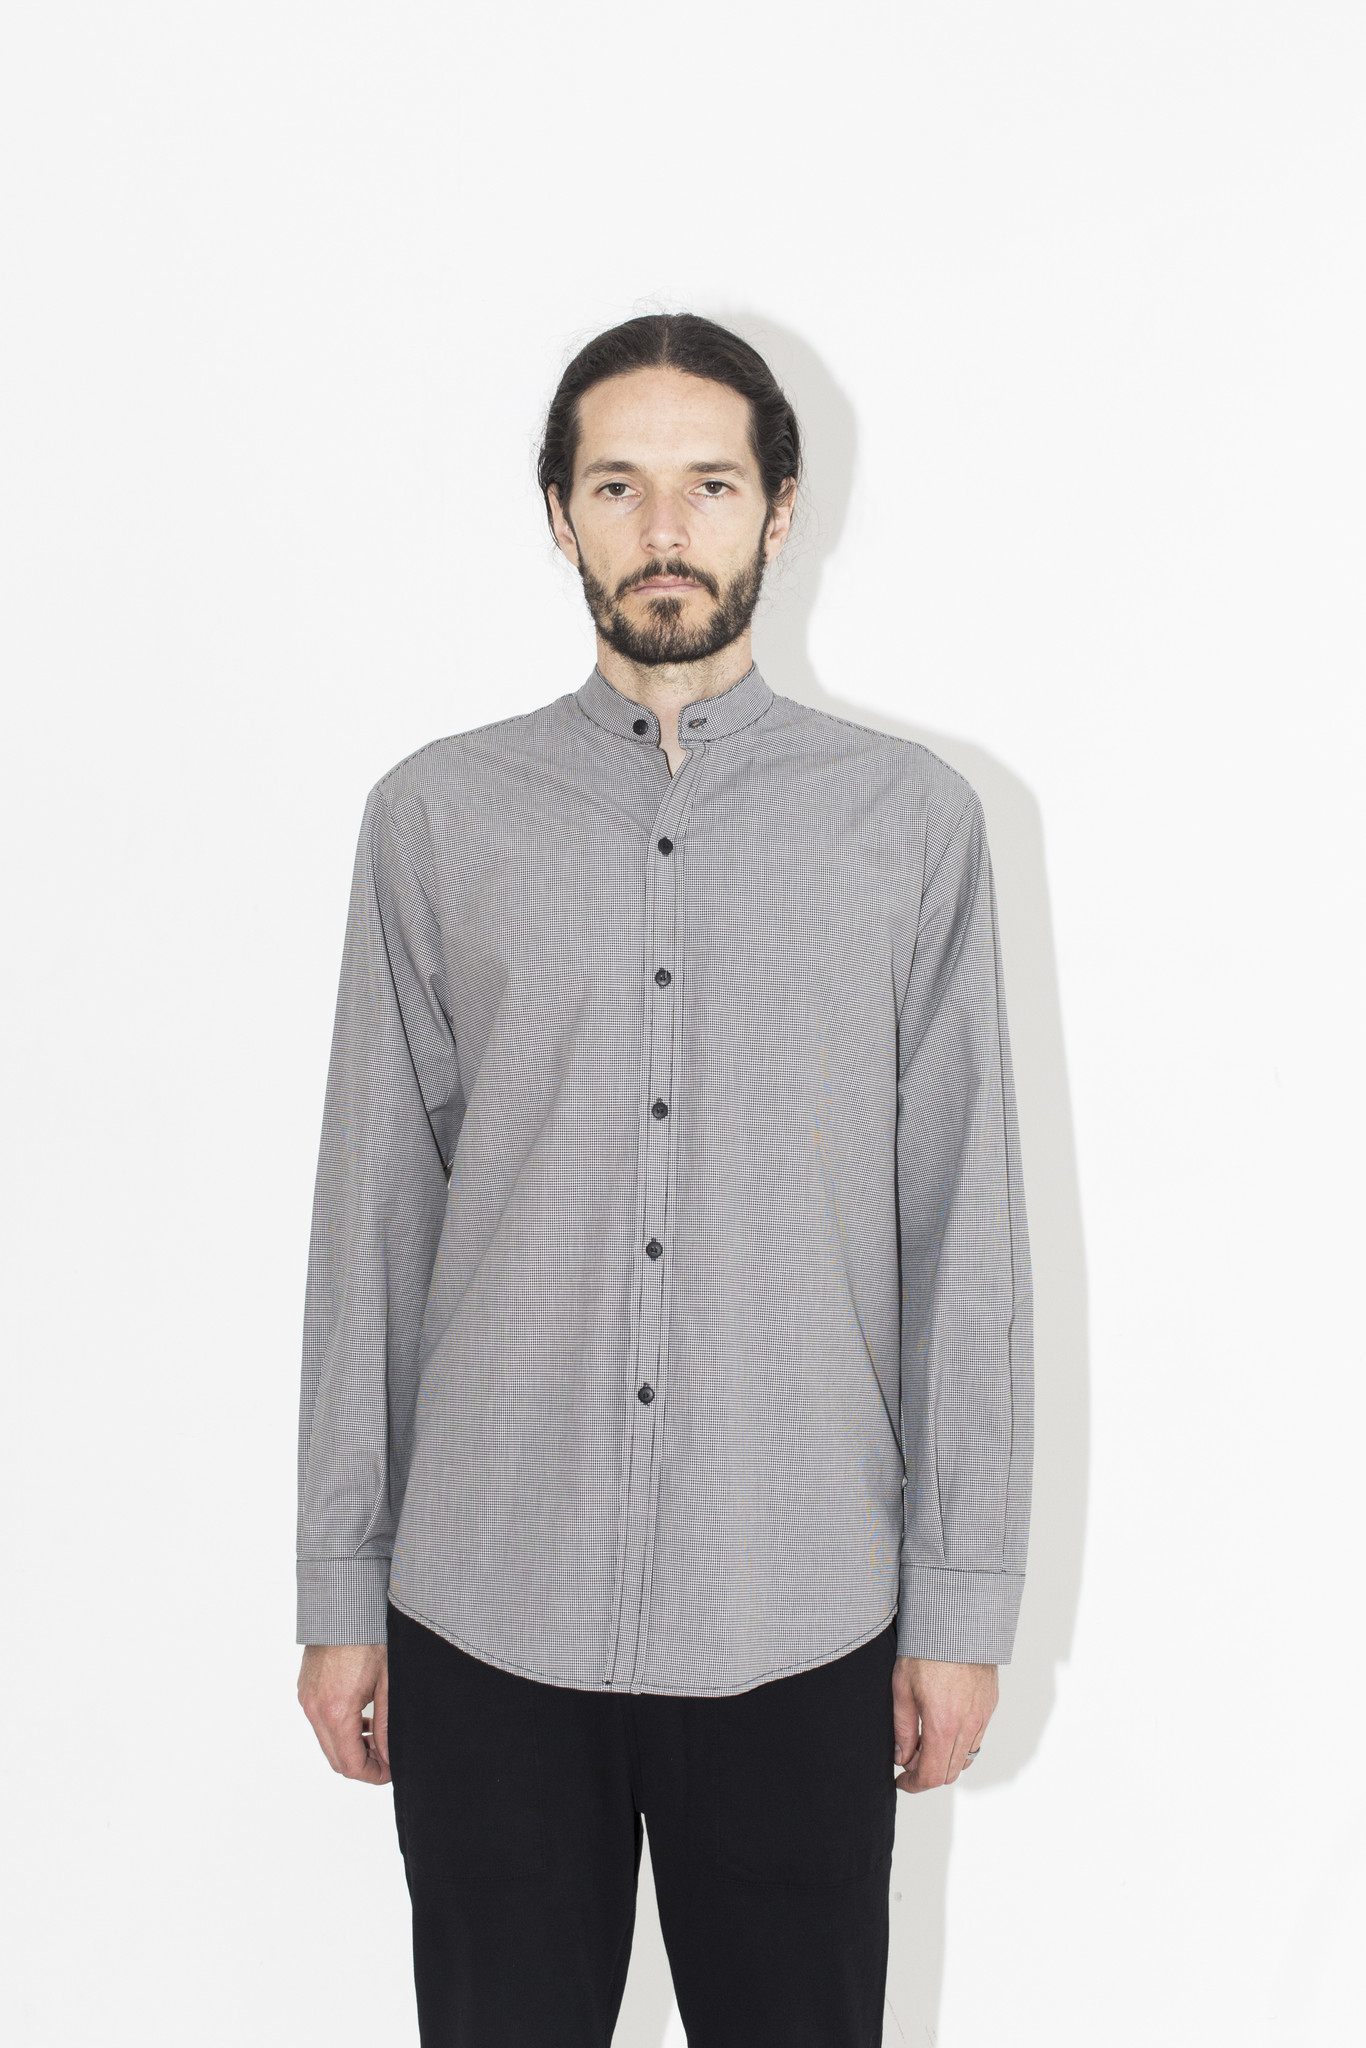 Some people find the no collar style to be quite bizarre when it comes to no collar shirts.